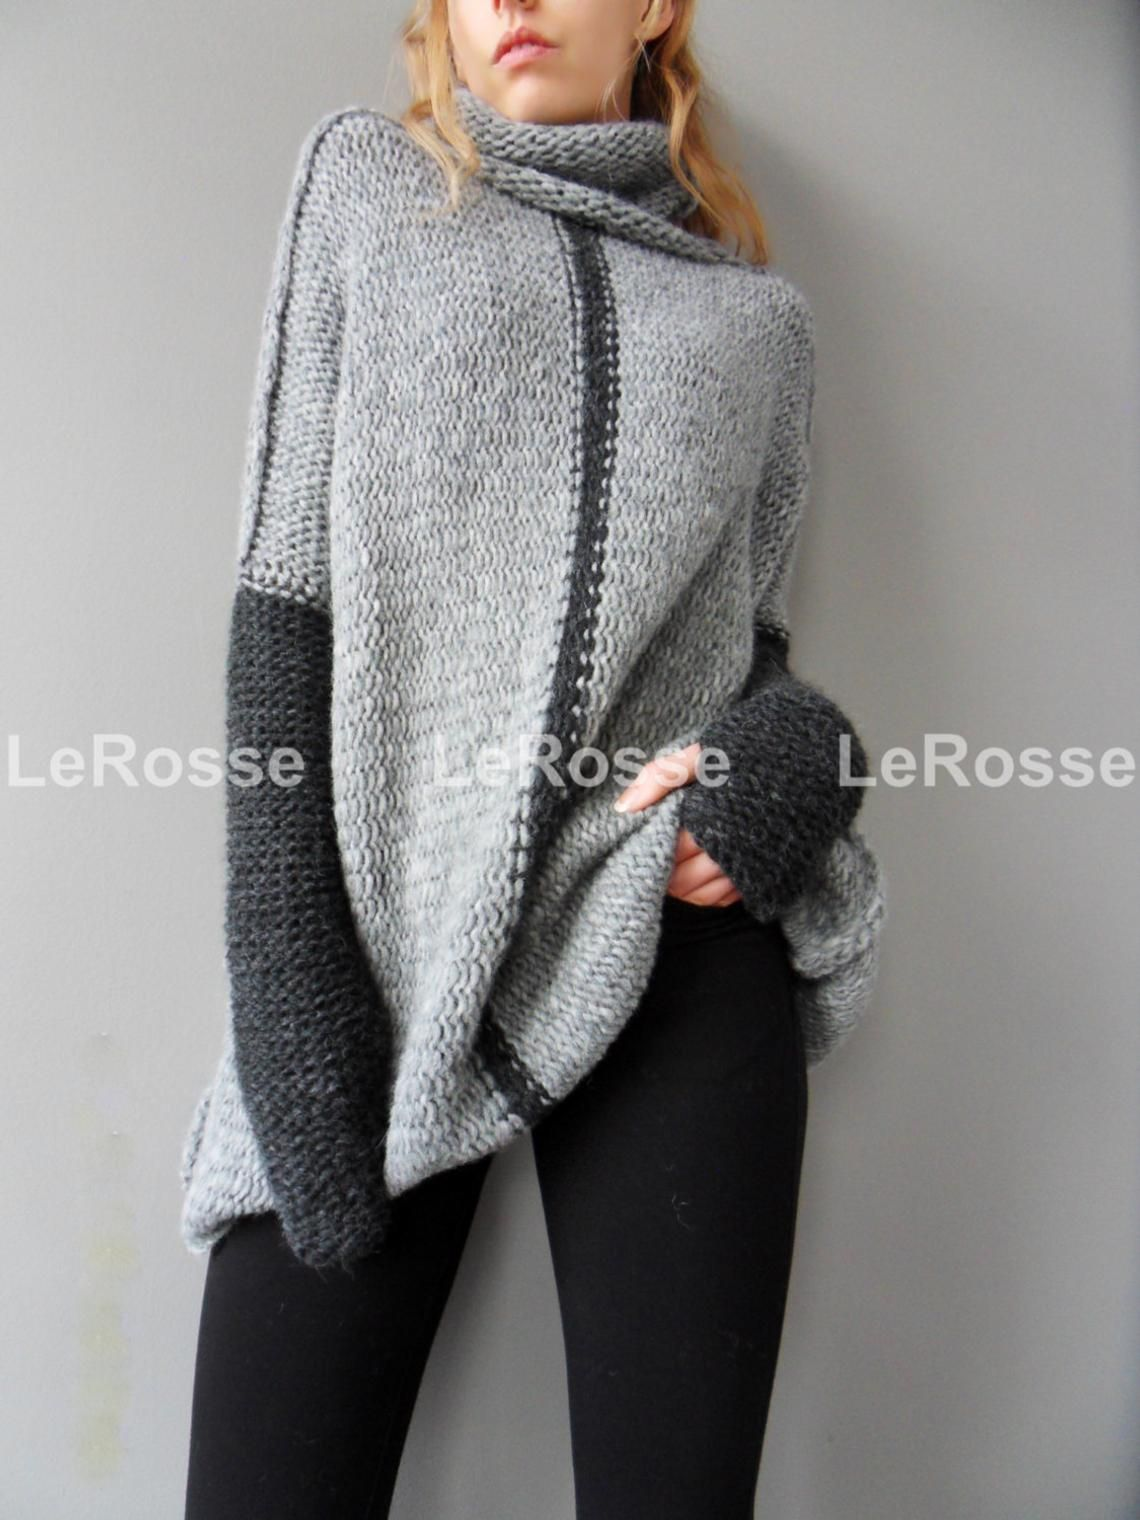 86d6a1533 Oversized Chunky knitted woman sweater. Turtleneck grey